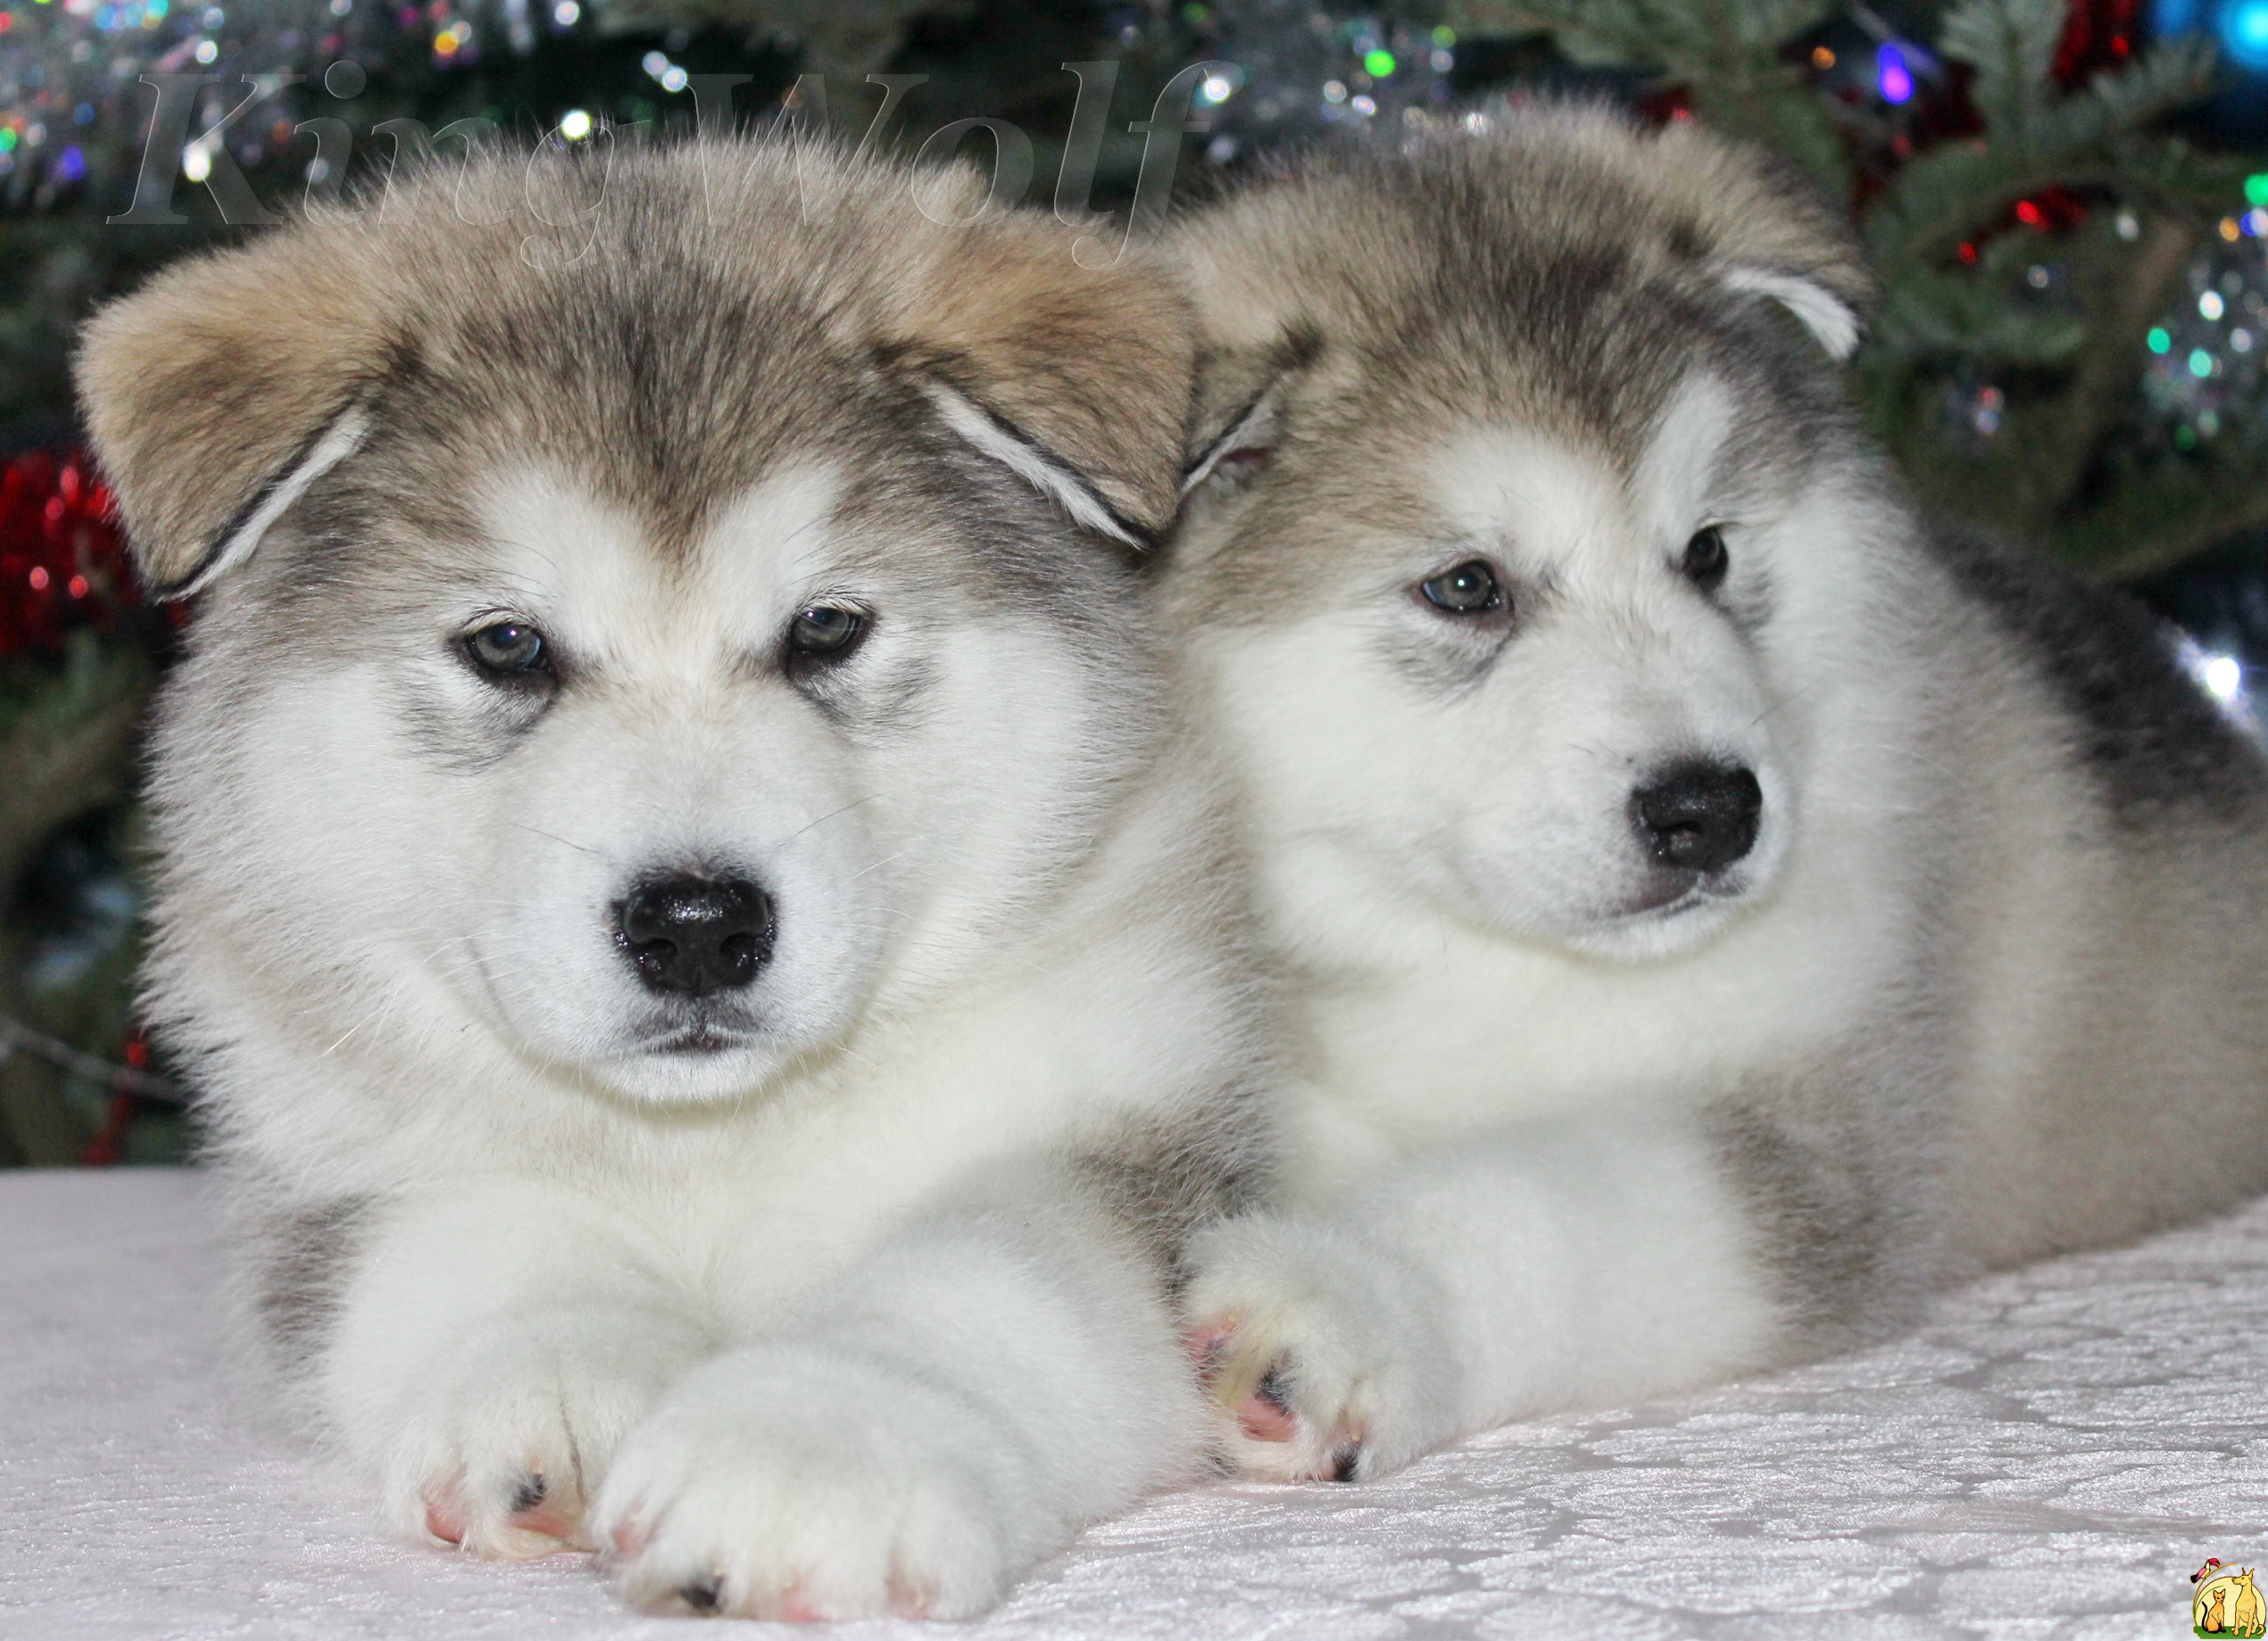 Alaskan Malamute Dog Breed Information and Pictures Alaskan malamute puppies photos